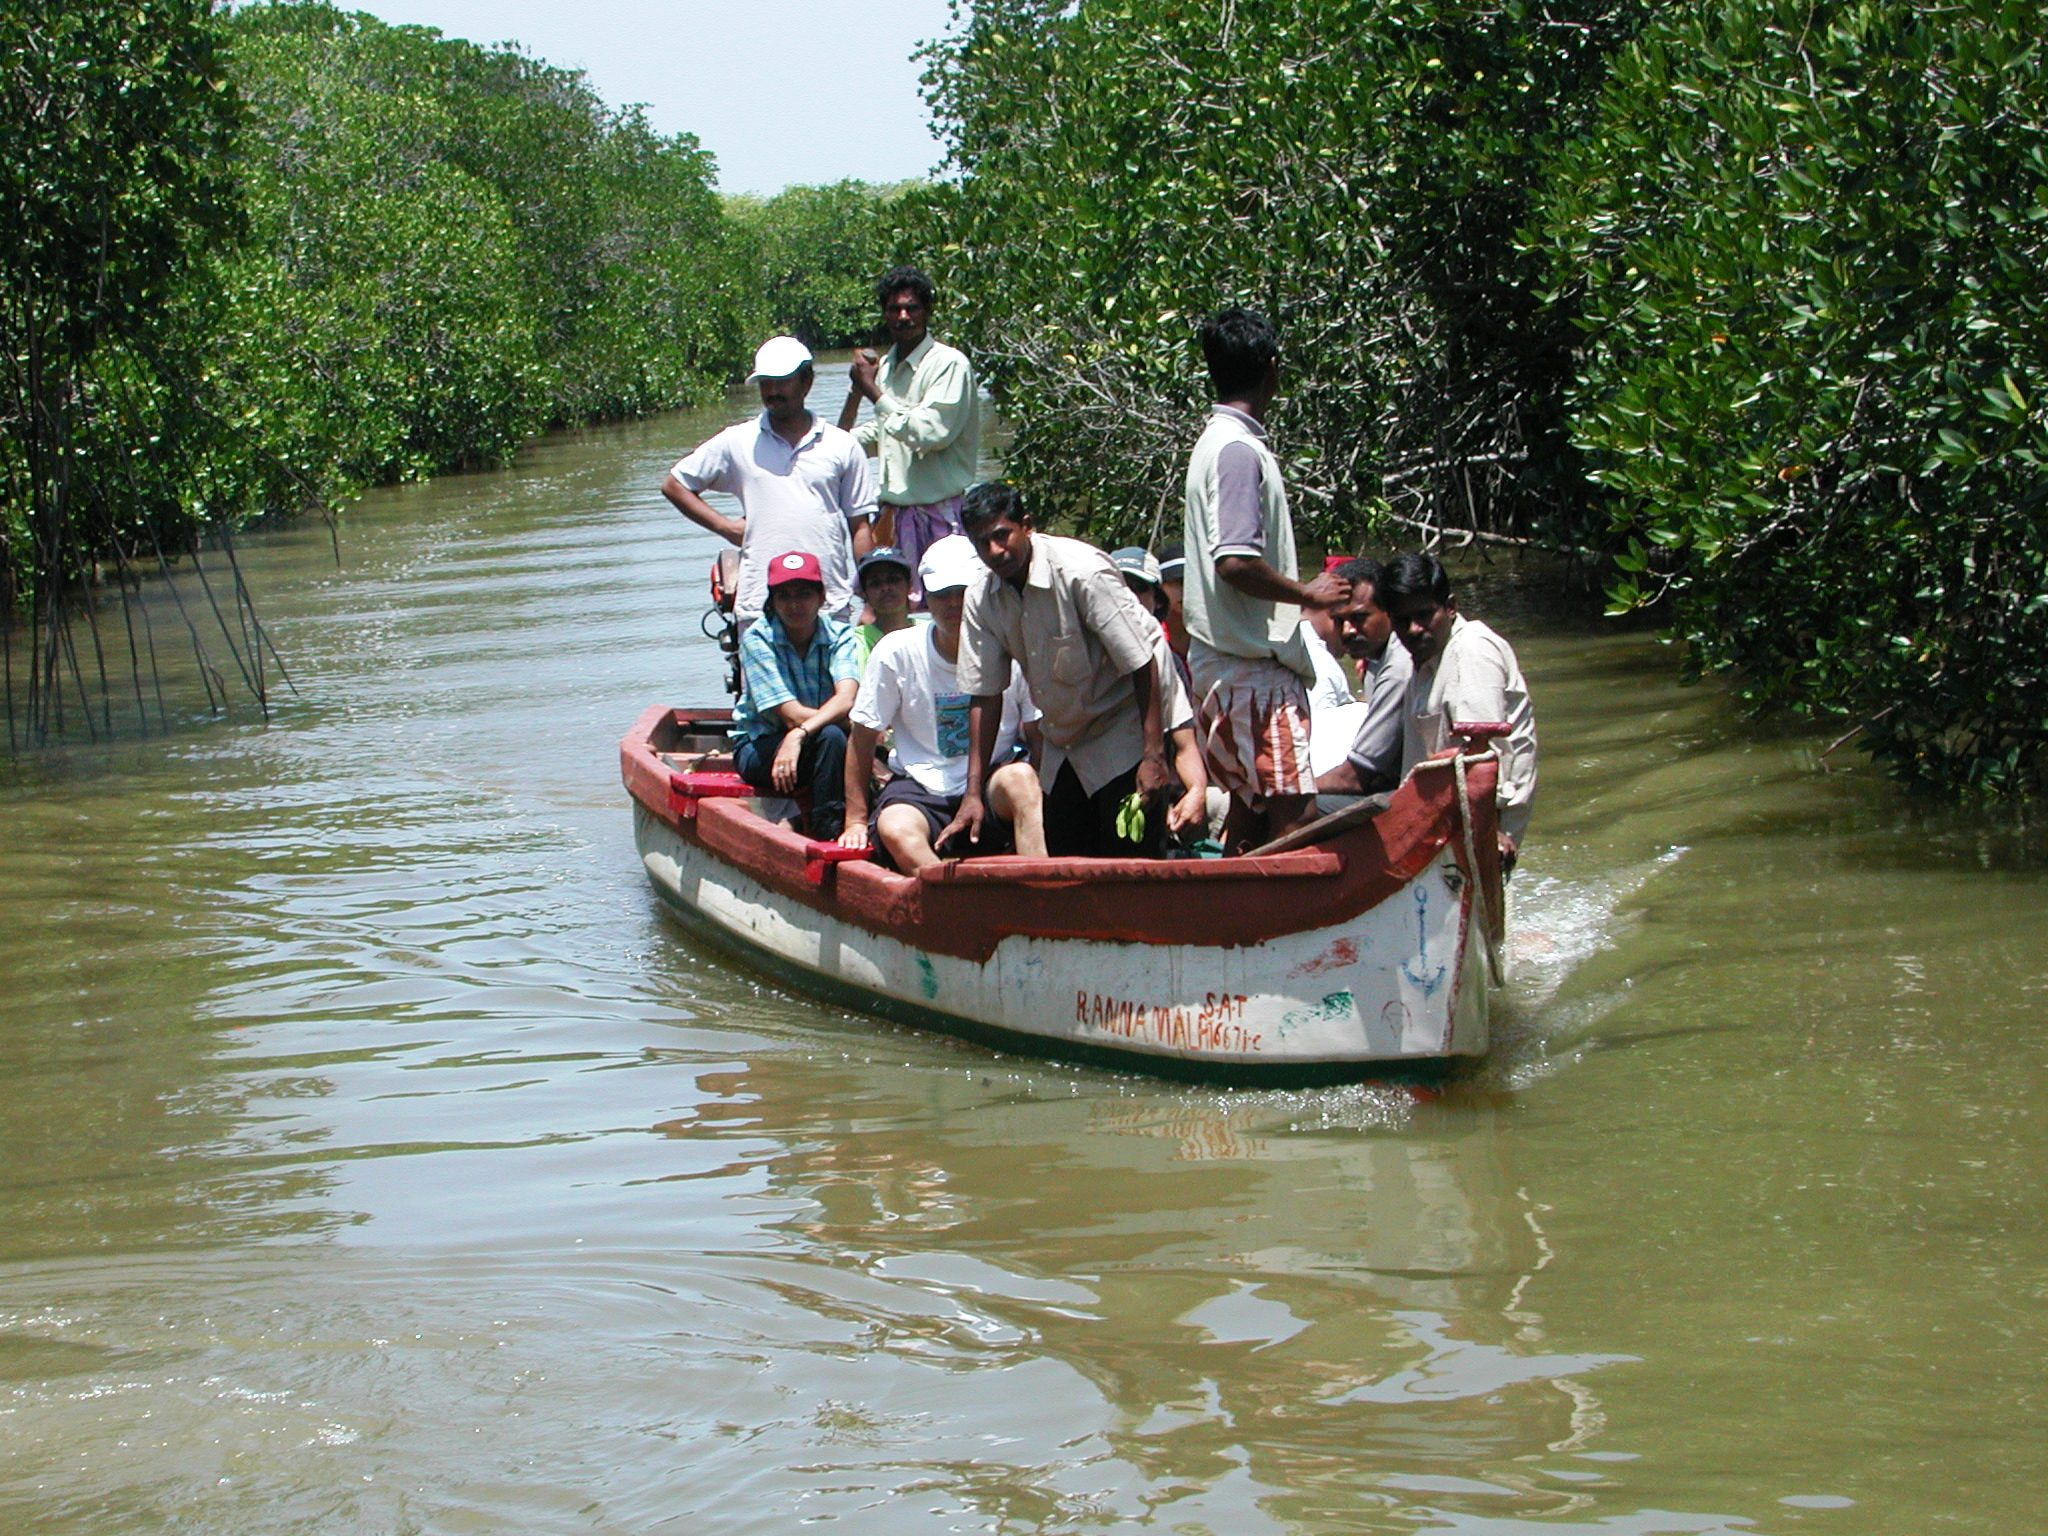 Boat ride in the mangrove waters